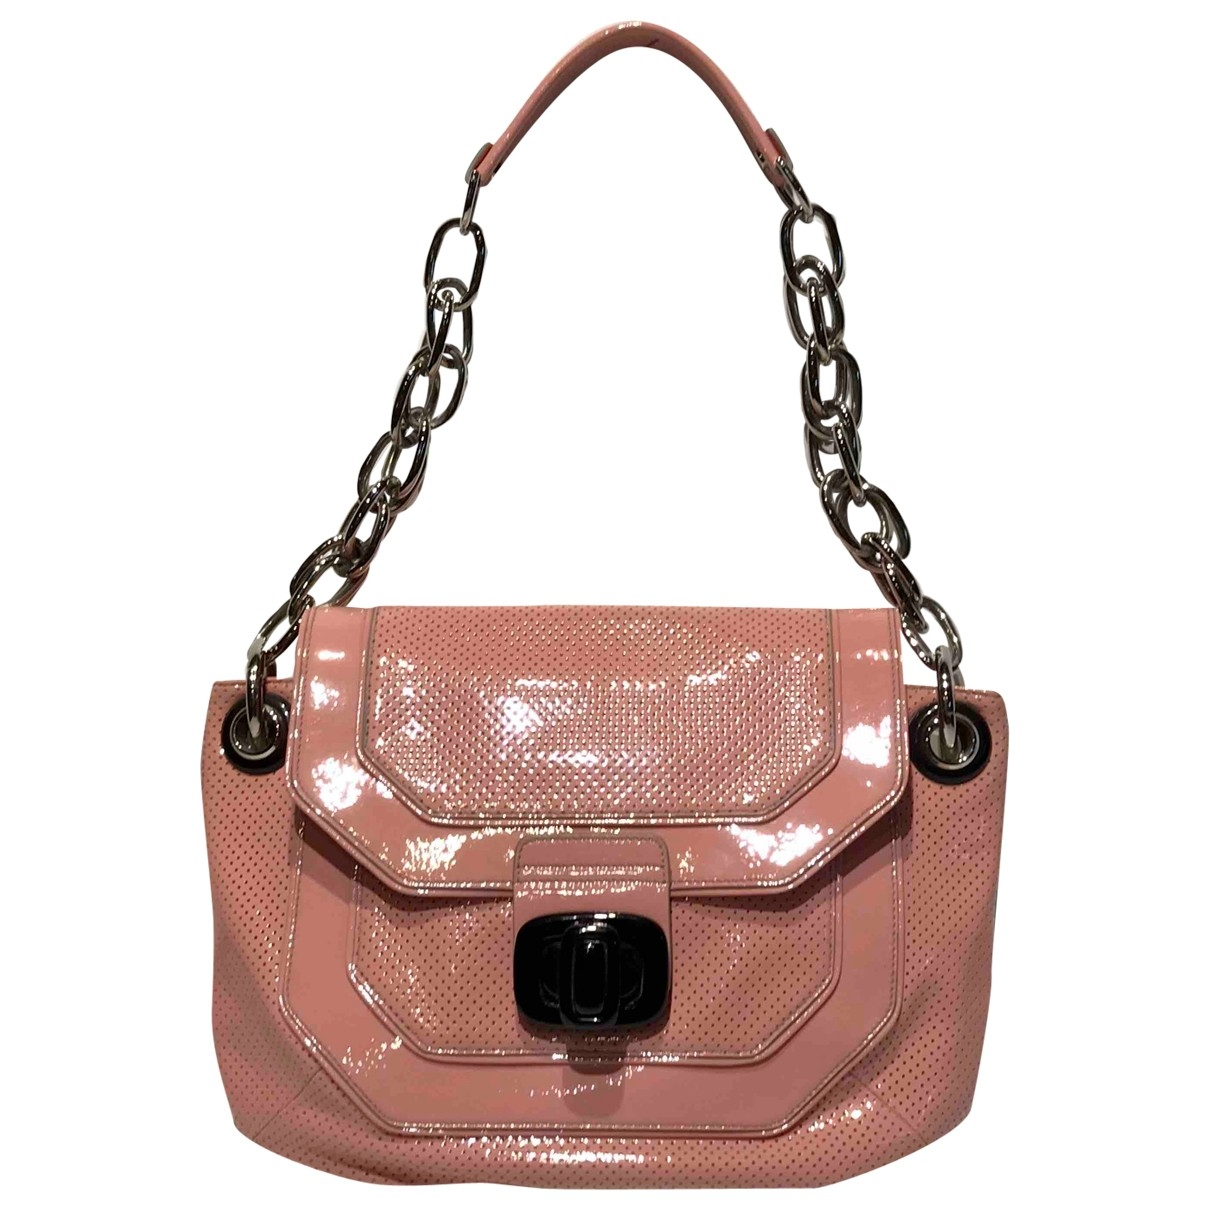 Lanvin \N Pink Patent leather handbag for Women \N